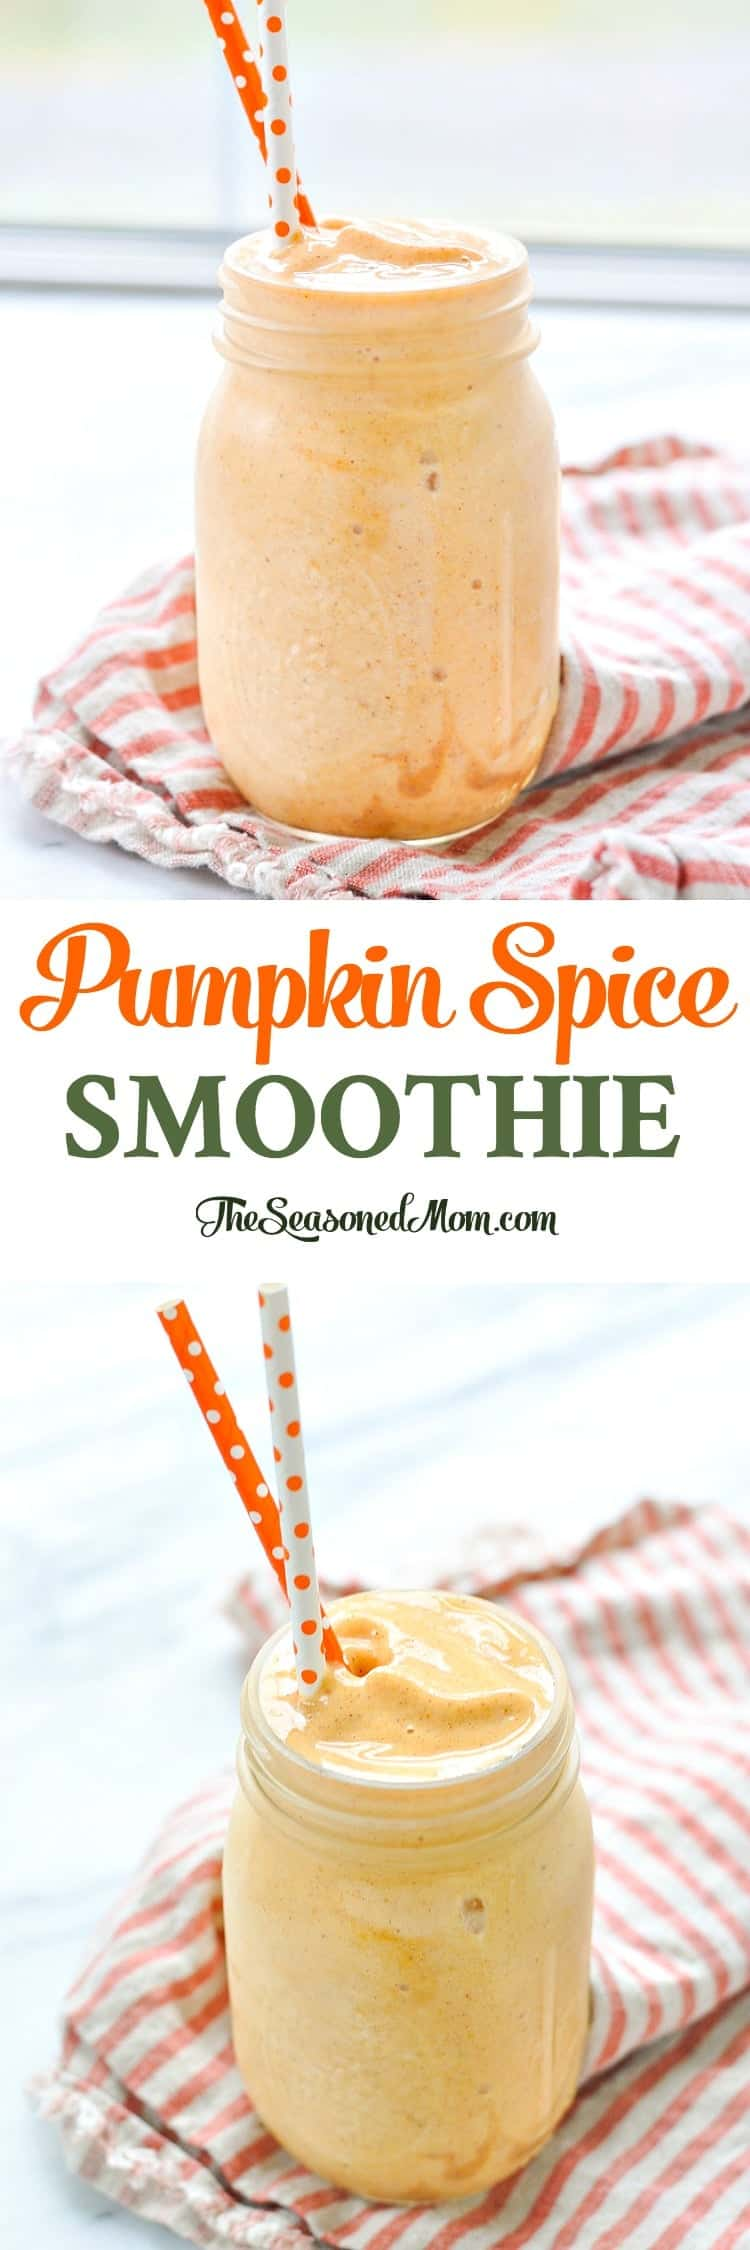 A 2-minute PUMPKIN SPICE SMOOTHIE is a healthy breakfast or snack that's full of protein! Smoothie Recipes | Pumpkin Recipes | Healthy Breakfast Recipes #smoothie #pumpkin #breakfast #snack